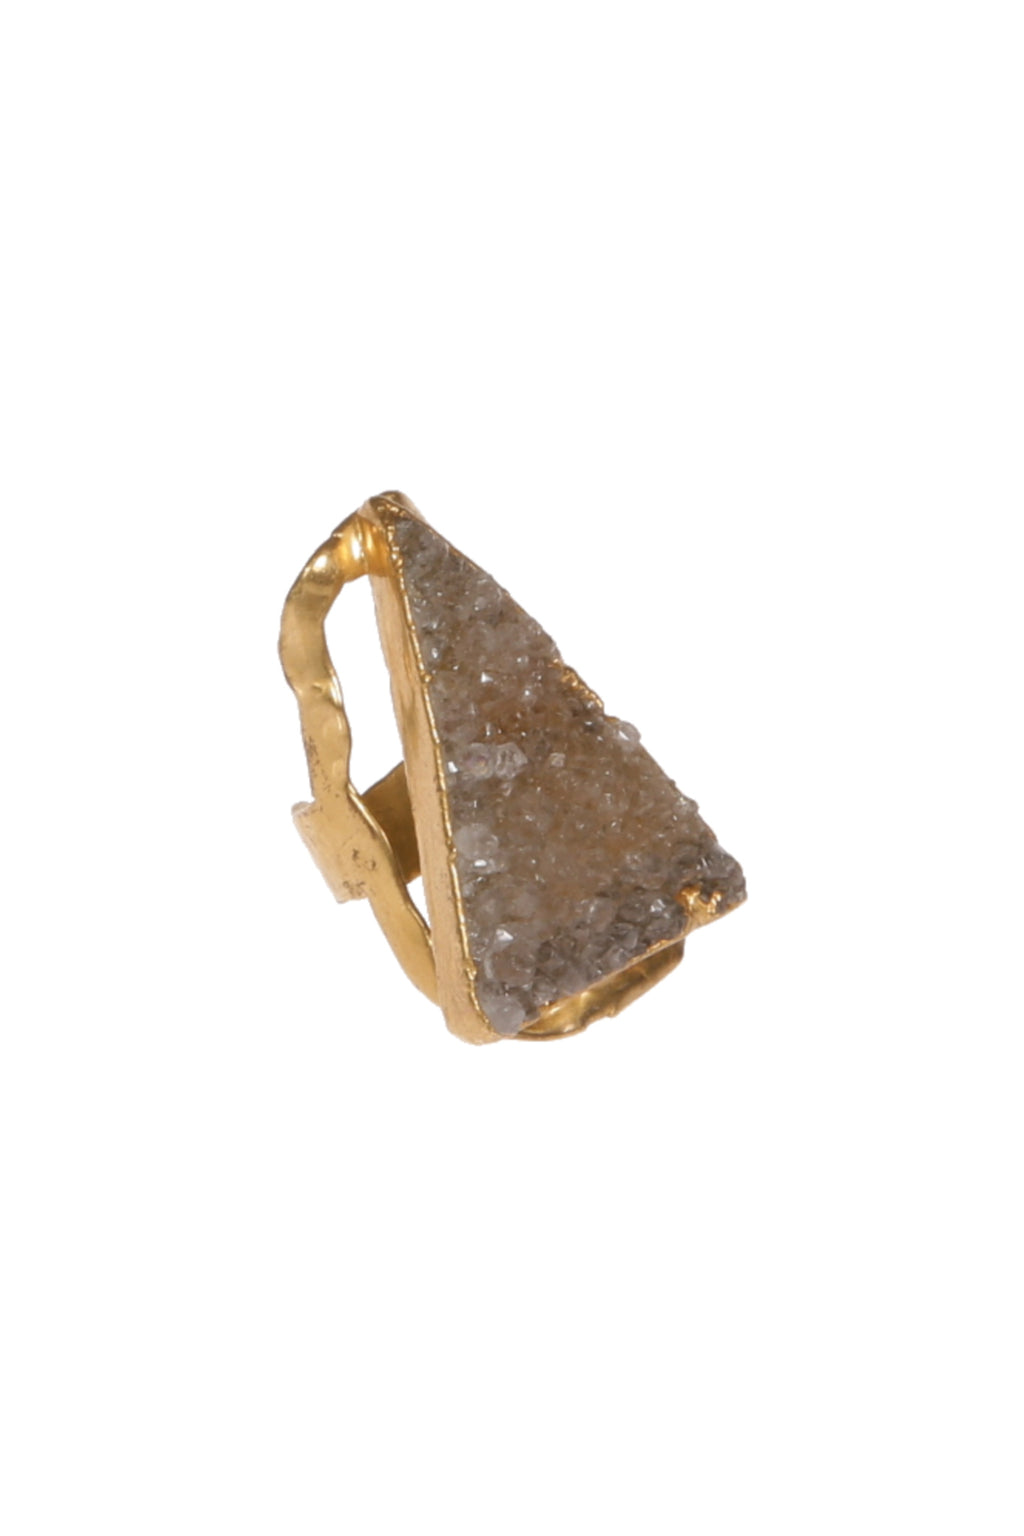 DUG UP NEW YORK | Gold Ring, Adjustable, Druzy Agate, Triangle